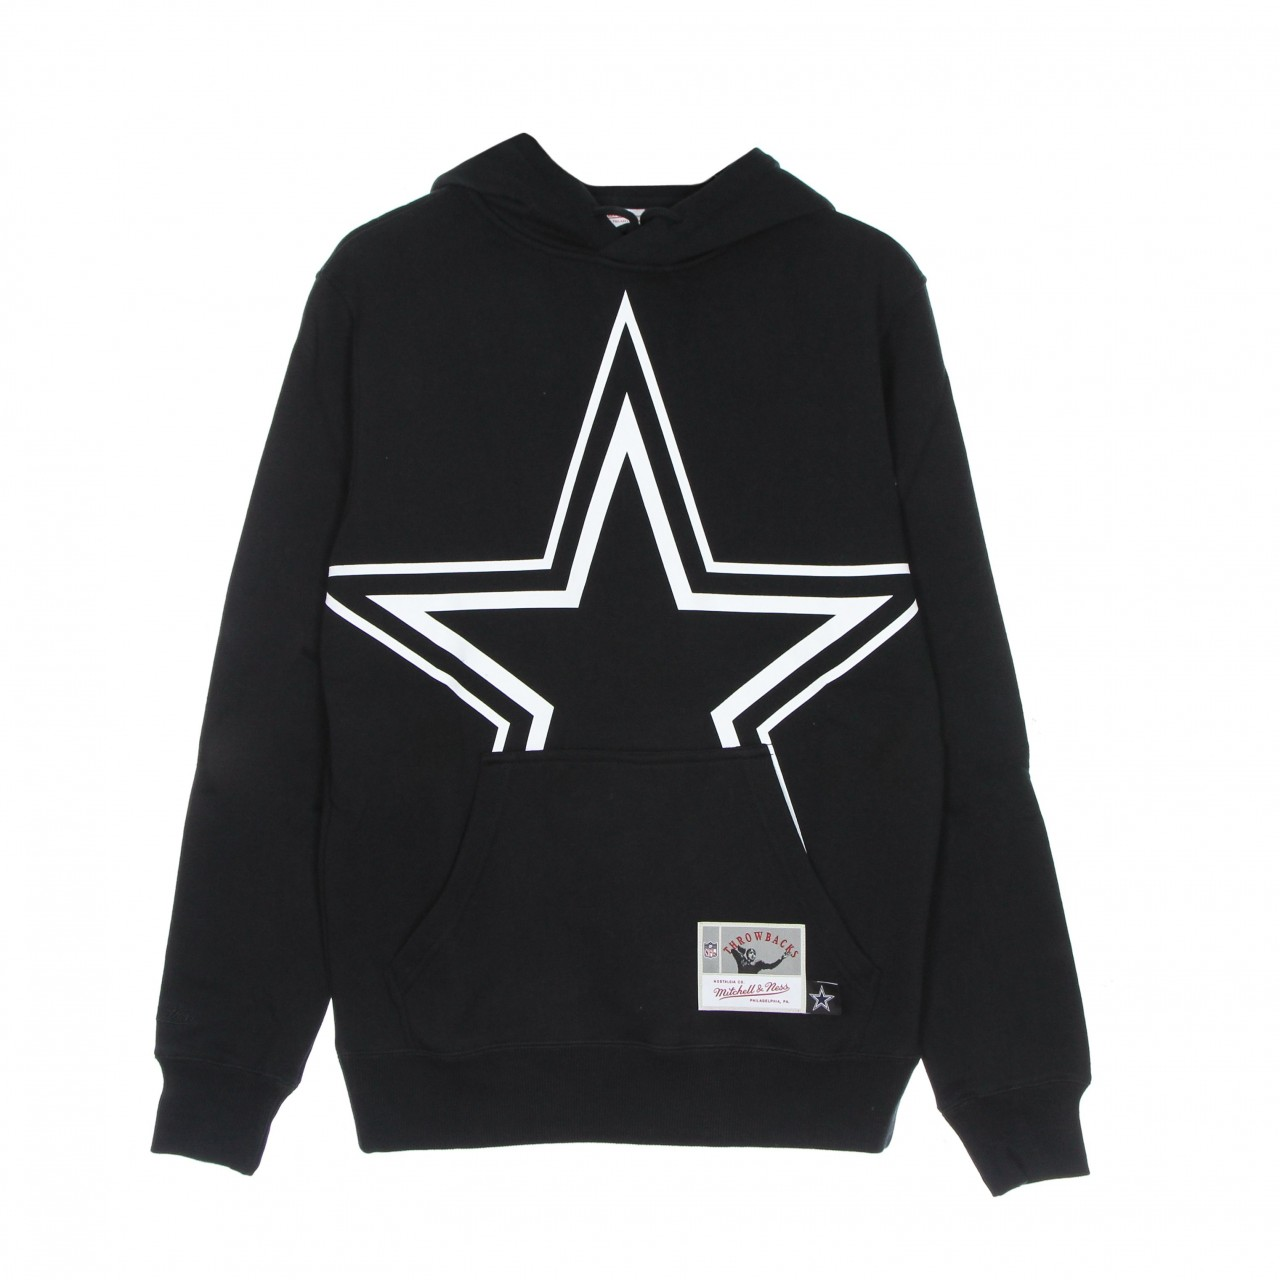 MITCHELL & NESS NFL BIG FACE 3.0 HOODIE DALCOW FPHD1177-DCOYYPPBLCK